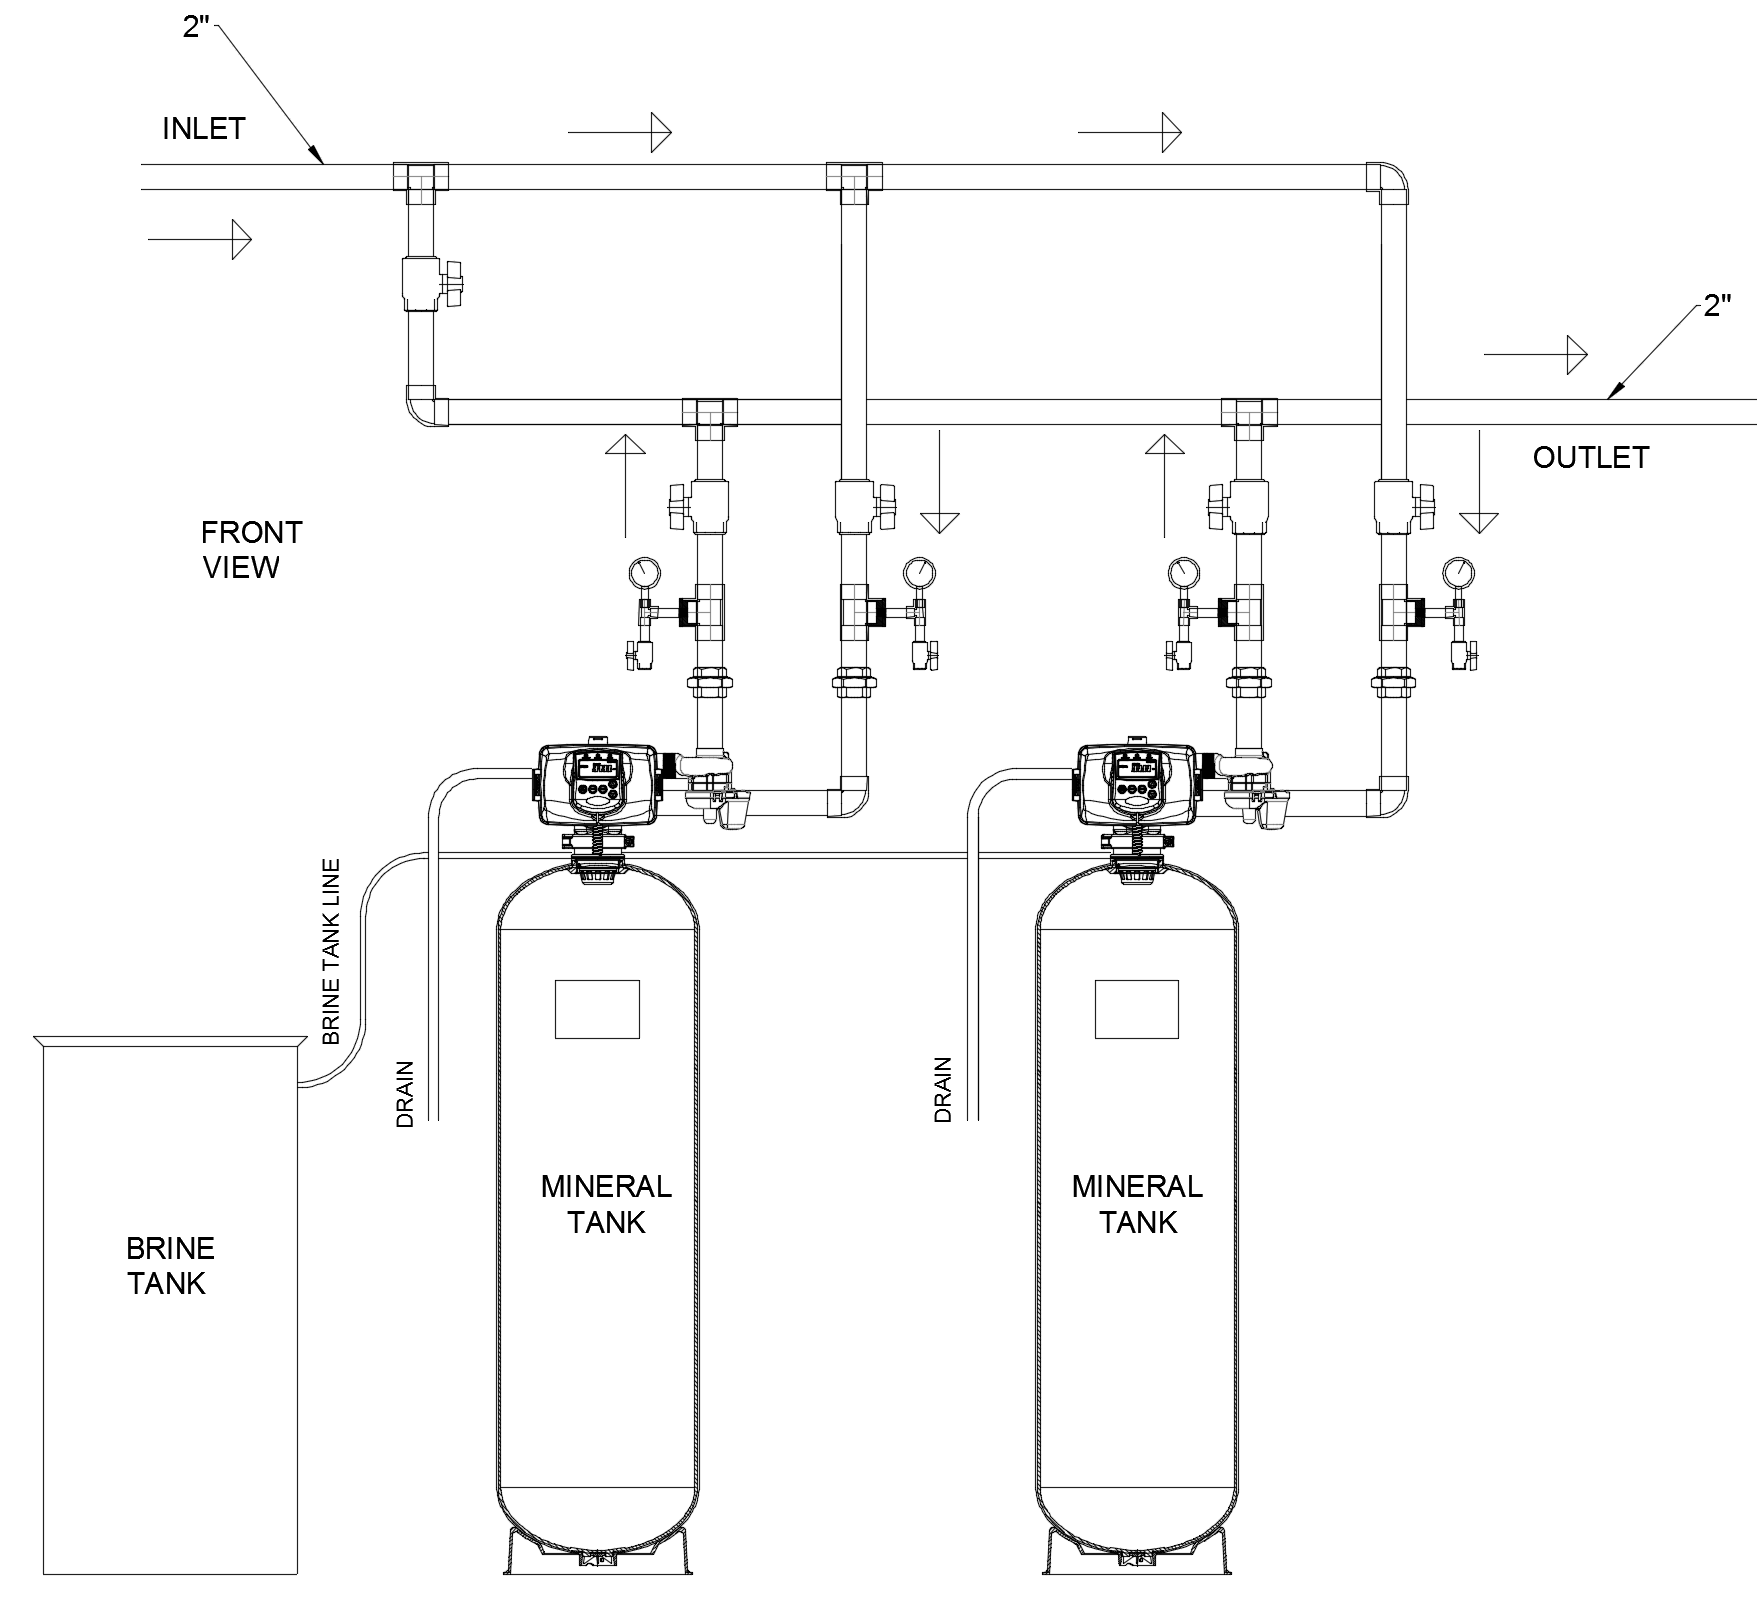 kinetico parts diagram 1978 ford f150 fuse box industrial water softener system great